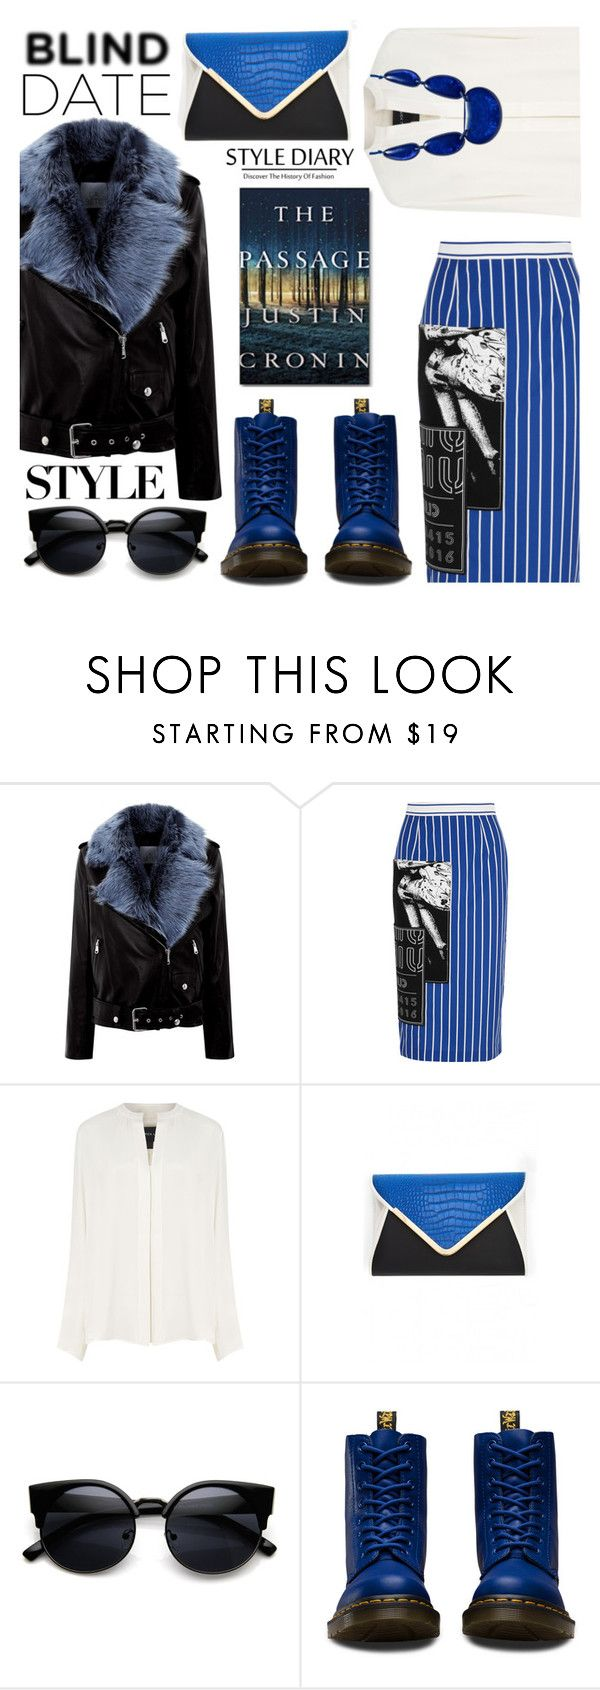 """What to Wear: Blind Date"" by the-reluctant-dragon ❤ liked on Polyvore featuring La Bête, Miu Miu, Derek Lam, Dr. Martens, INC International Concepts and blinddate"